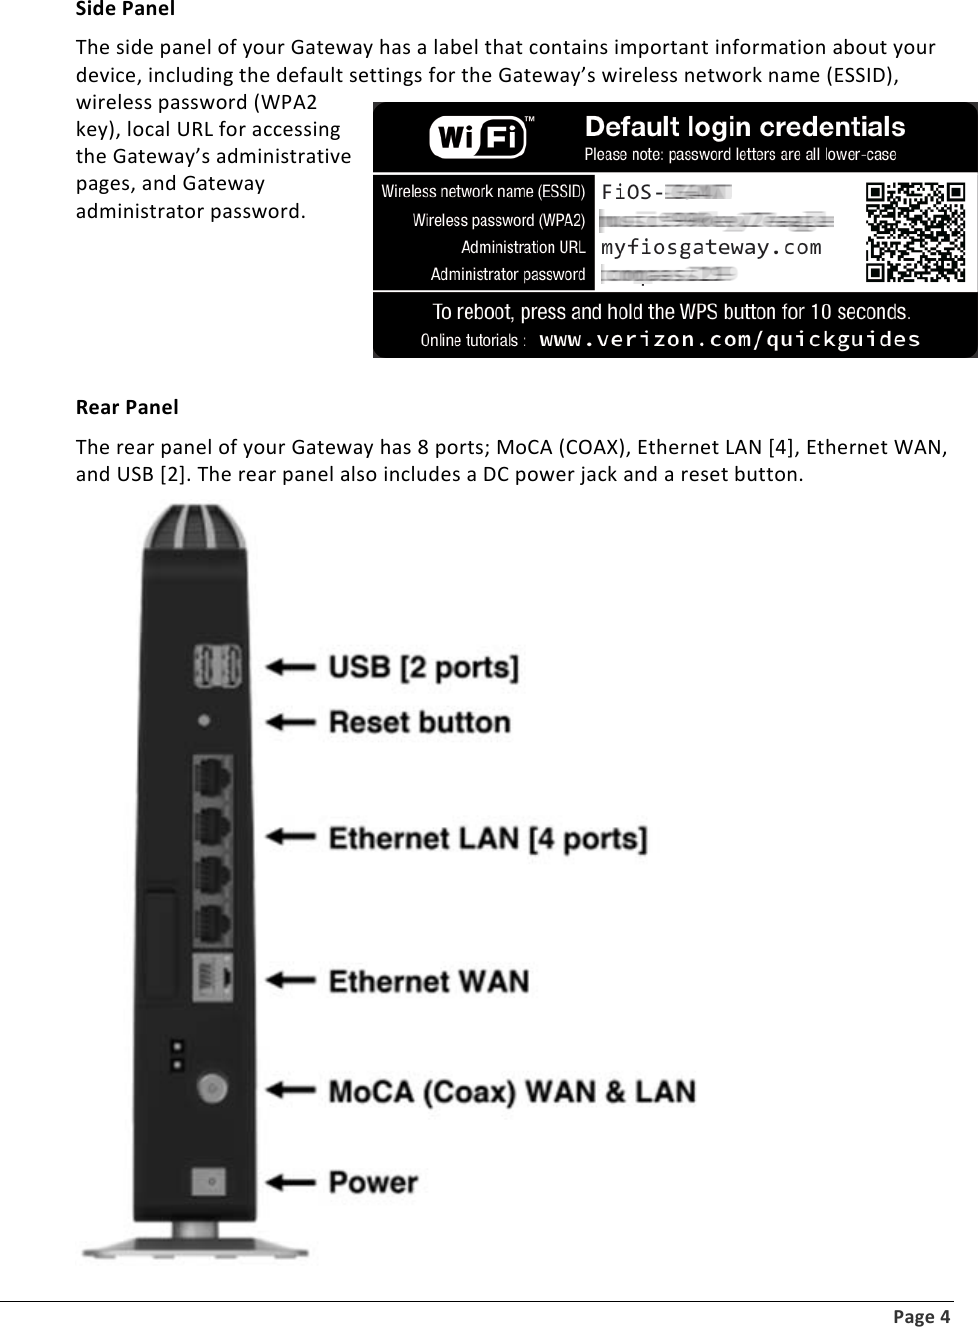 download manual for the verizon fios g1100 router